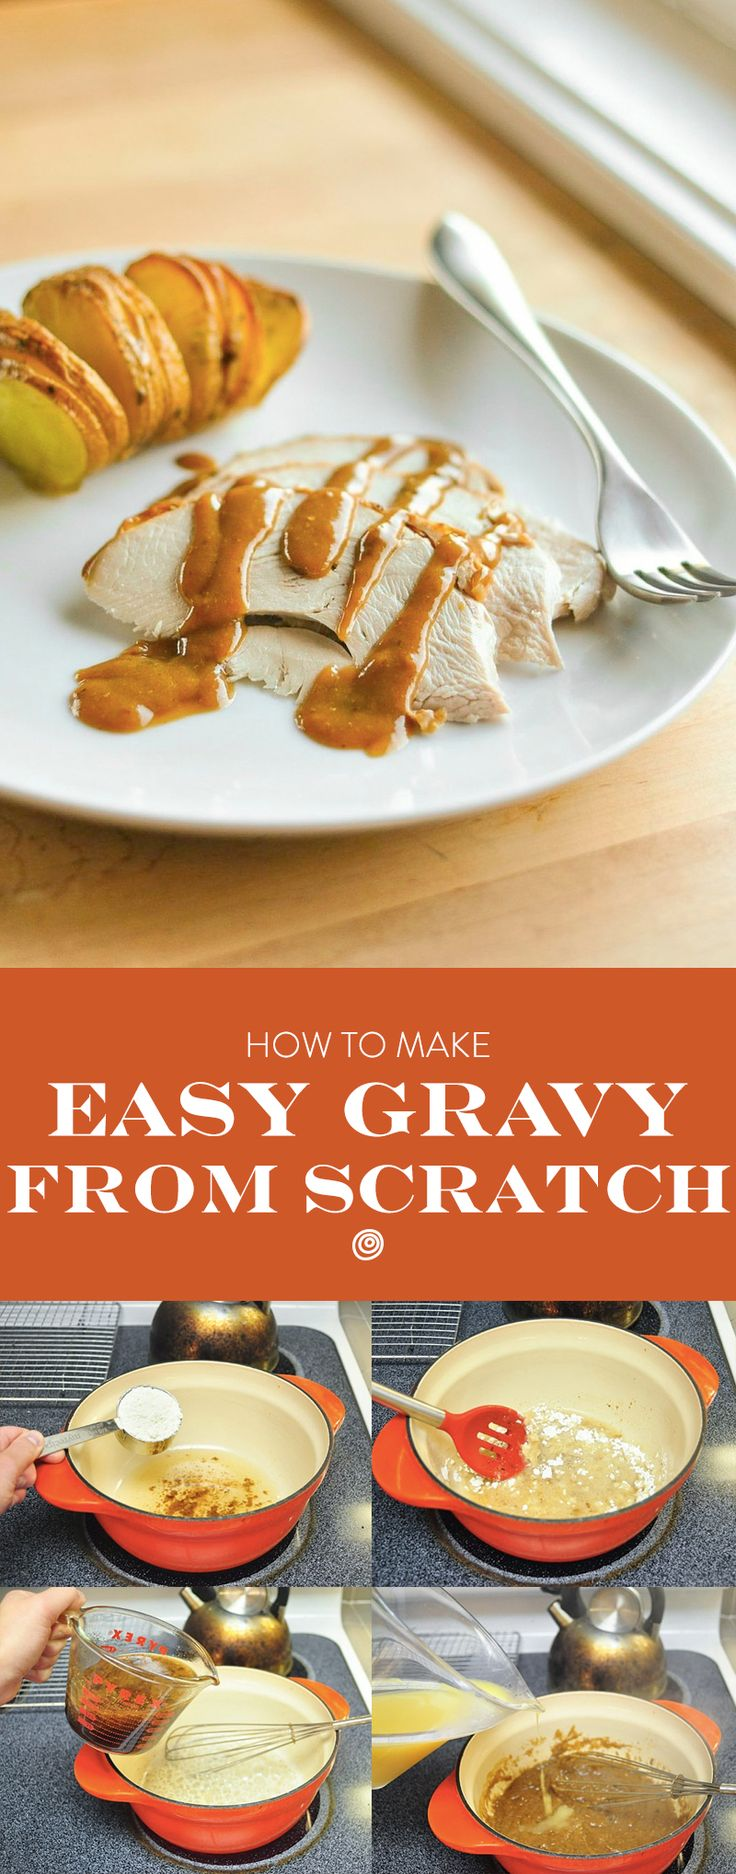 How To Make Brown or White Gravy From Scratch: The Simplest, Easiest Method. This recipe can be done with or without drippings. Great with mashed potatoes or roasted turkey or chicken on thanksgiving - or just whenever! Step by step instructions with photos so this tutorial is great for beginners or someone who is hosting a holiday party for the first time.